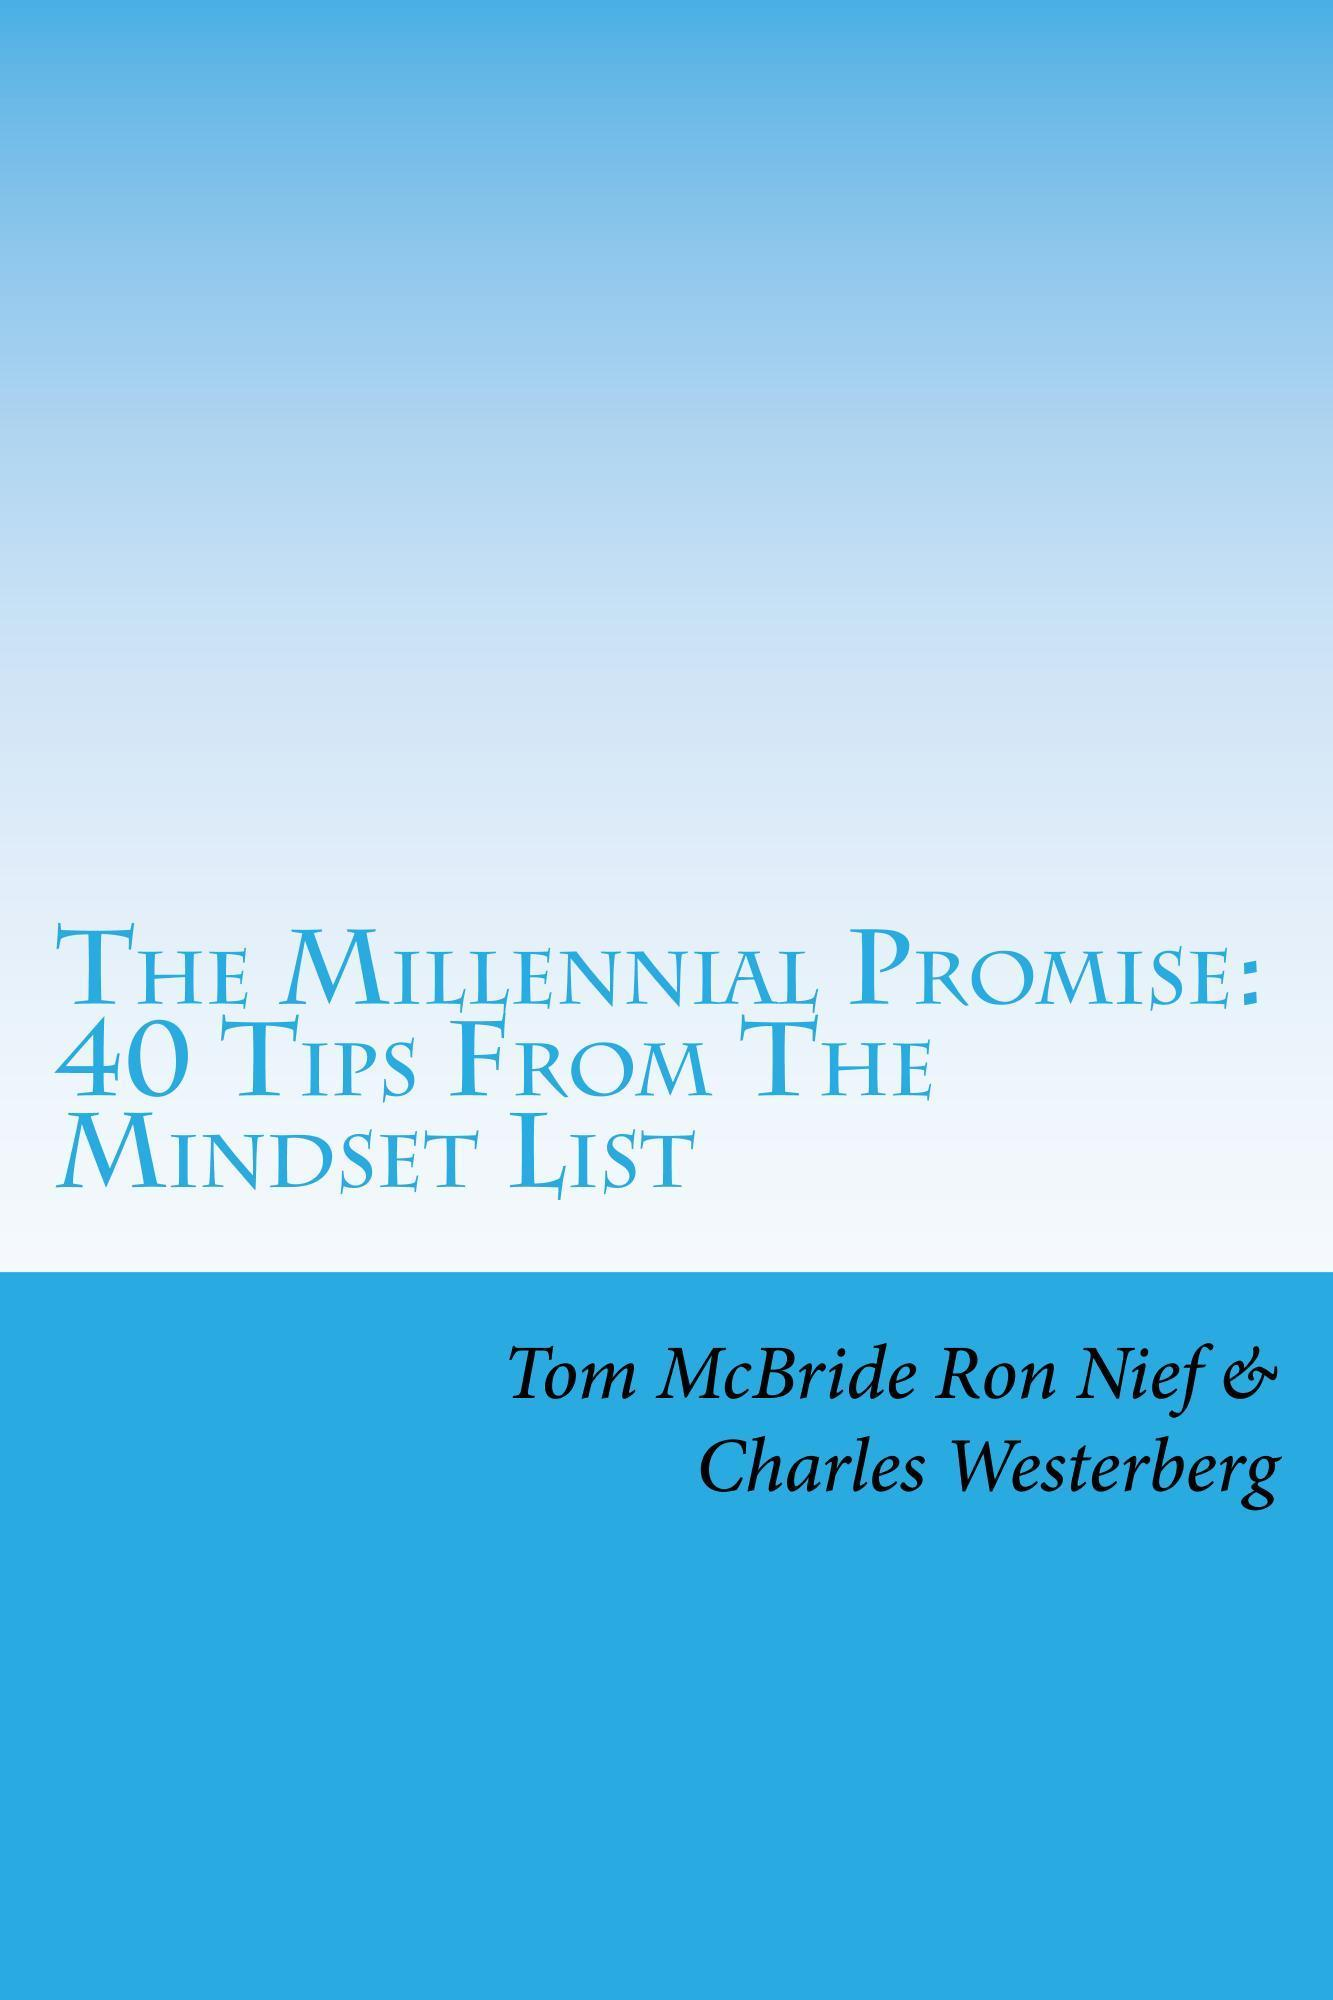 The Millennial Promise: 40 Tips From The Mindset List